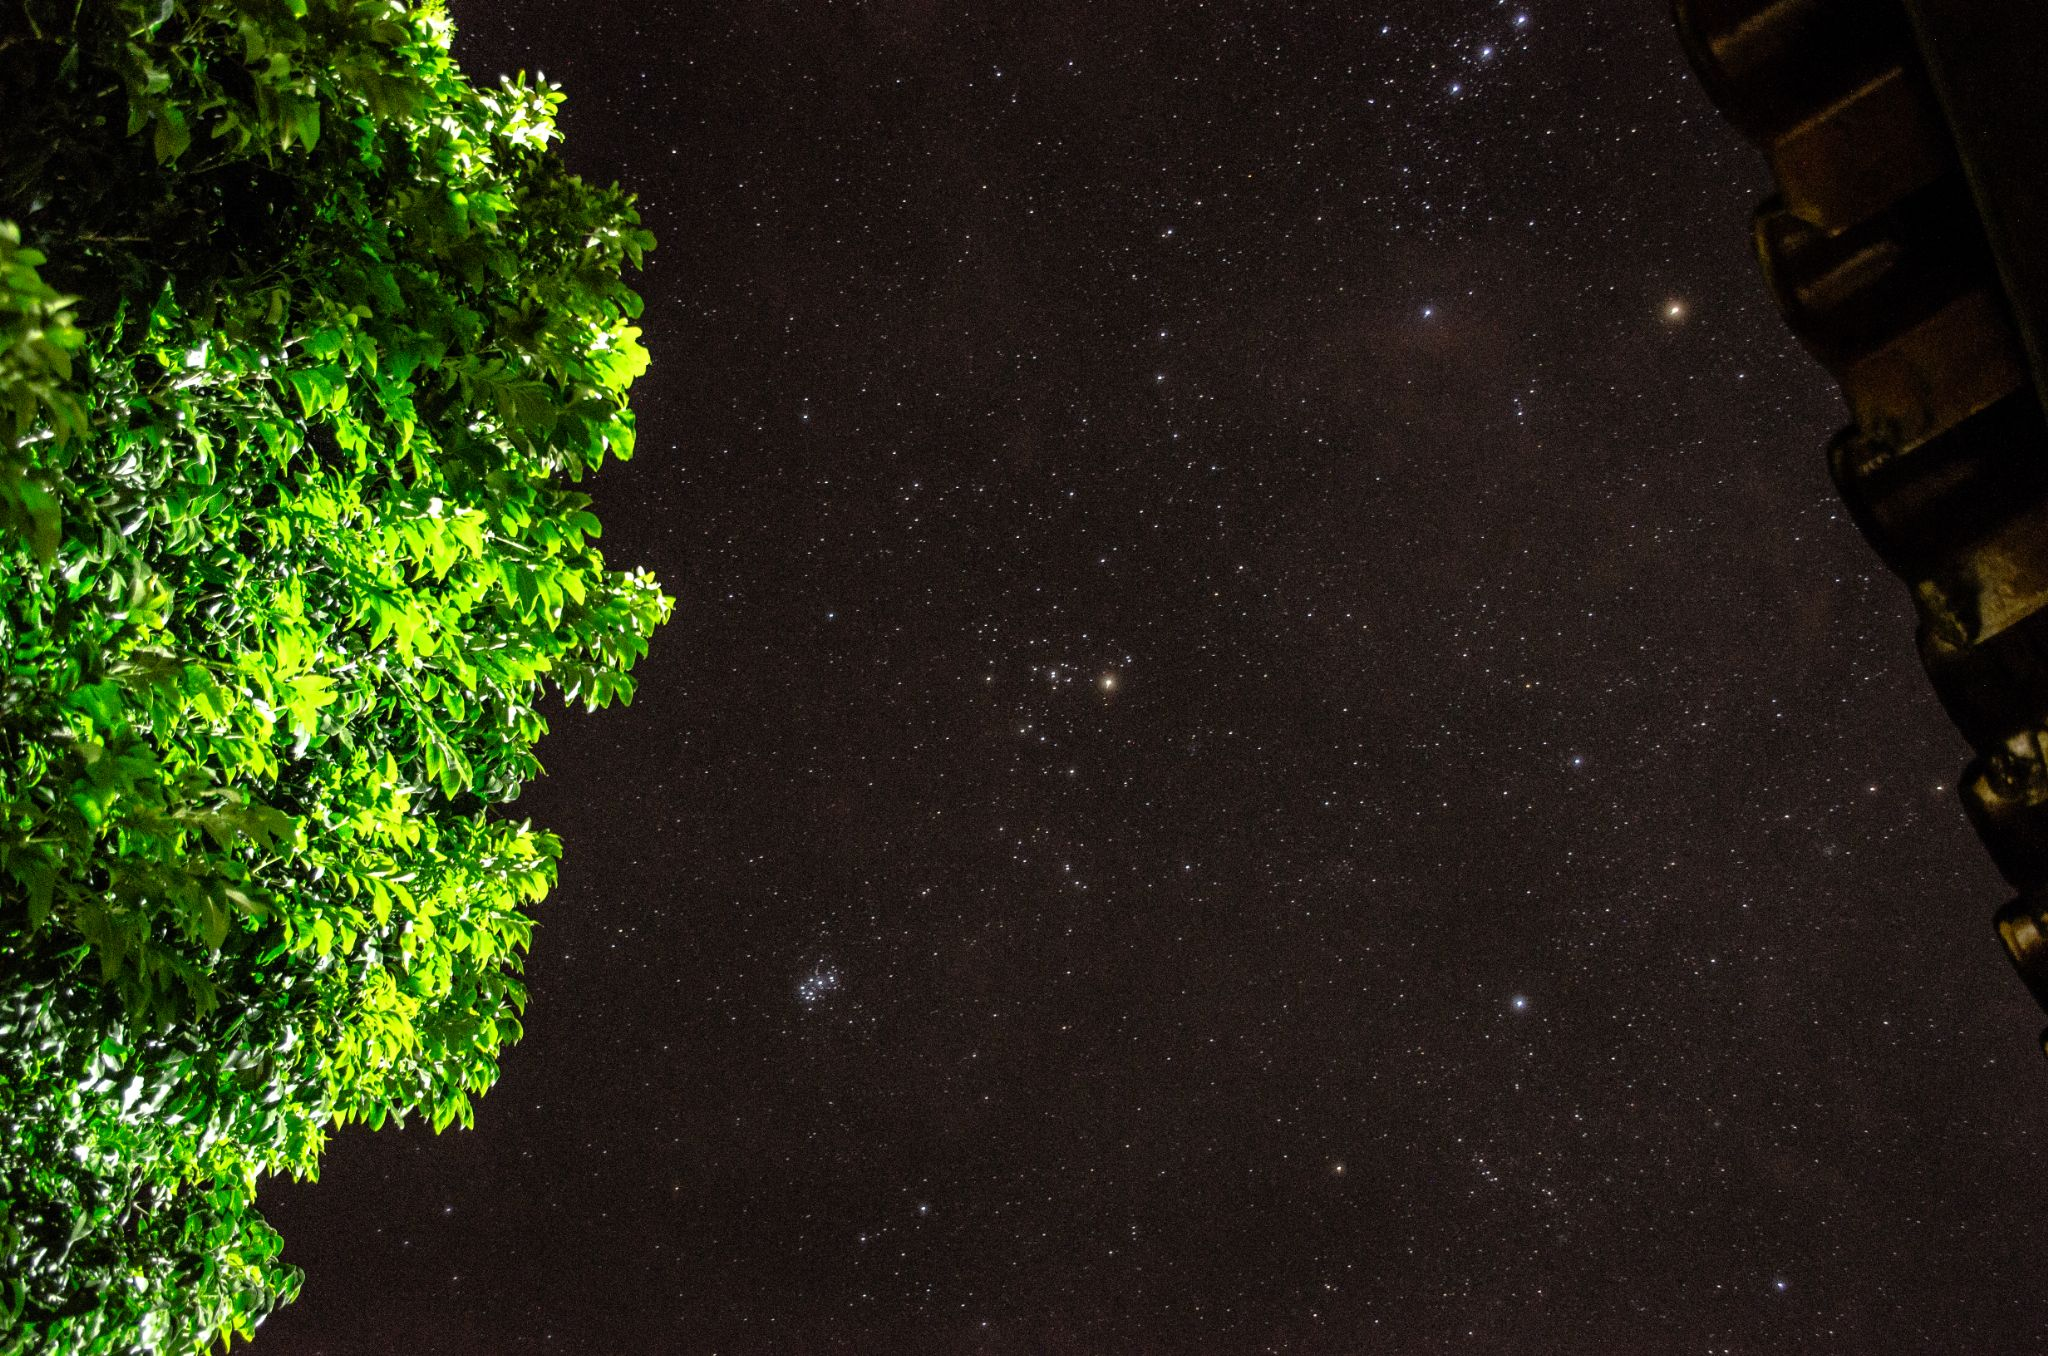 Tree, starry night and old roof by ElianoJr